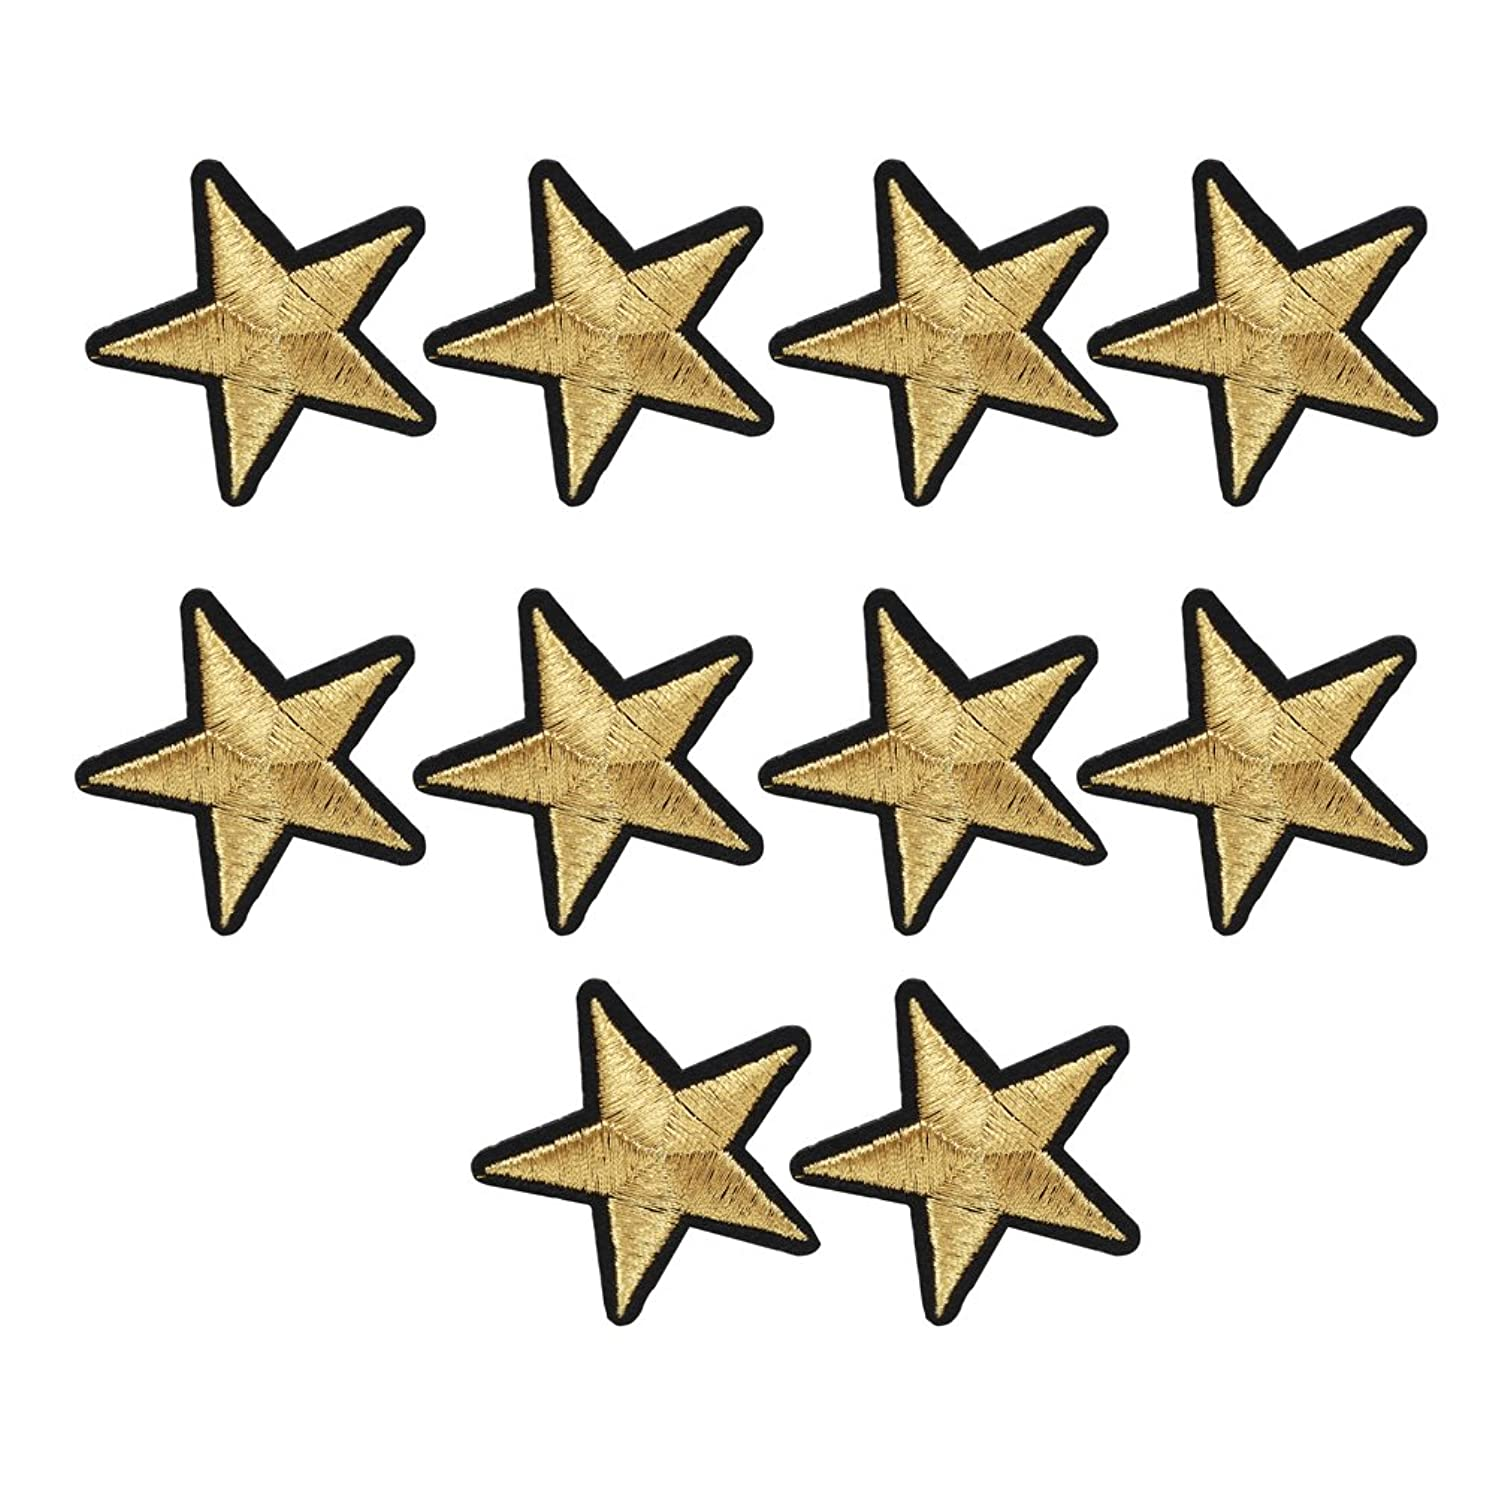 XUNHUI 10 pcs Gold Star Embroidered Badges Iron On Patches for Clothing Applique Sticker for Clothes